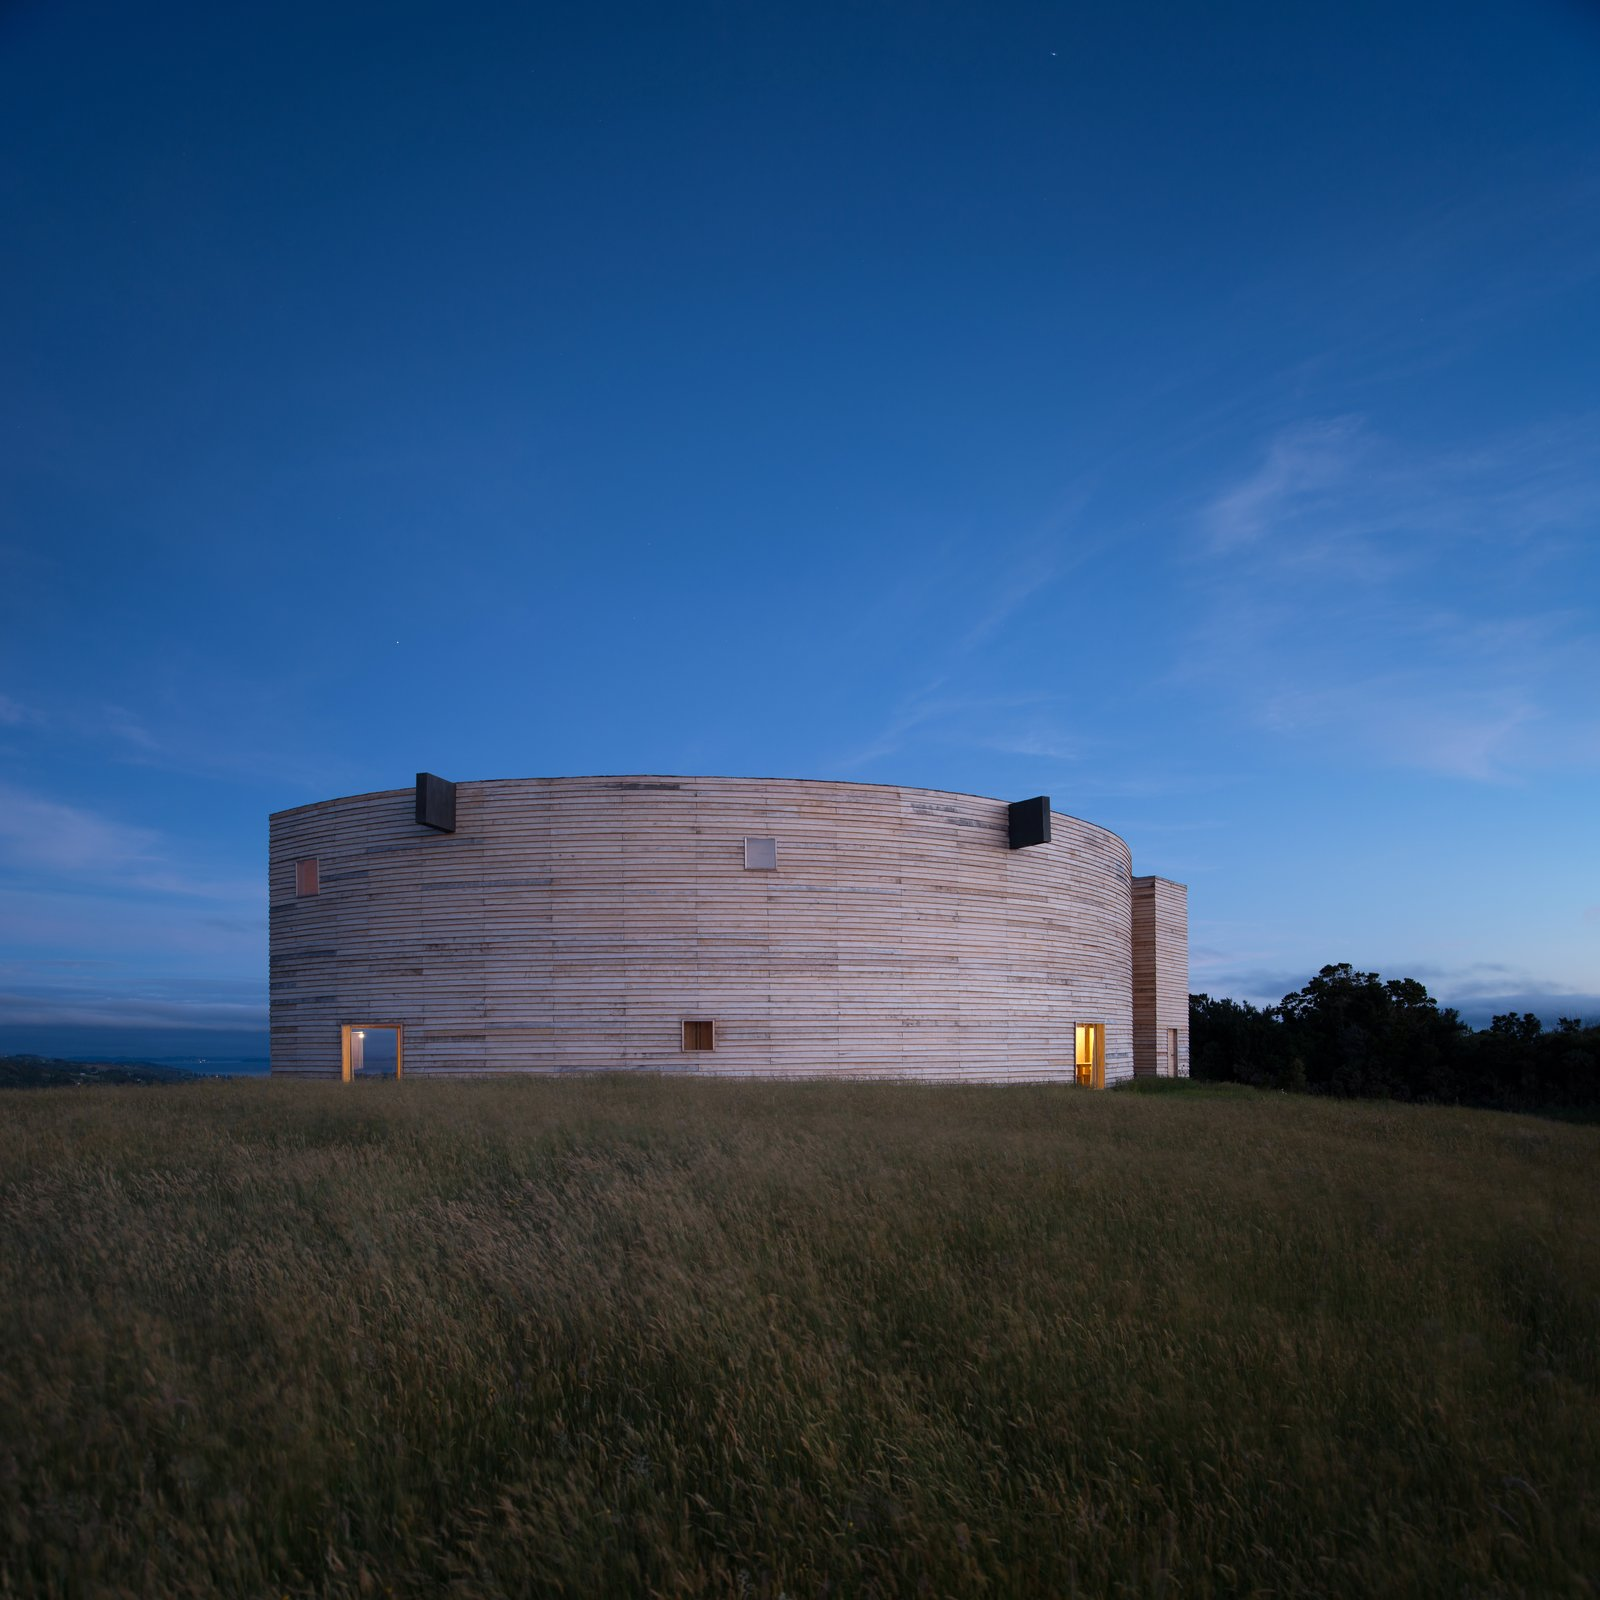 The 2,000-square-feet house has an enigmatic form that resembles a cylinder, cut in half along its diameter.